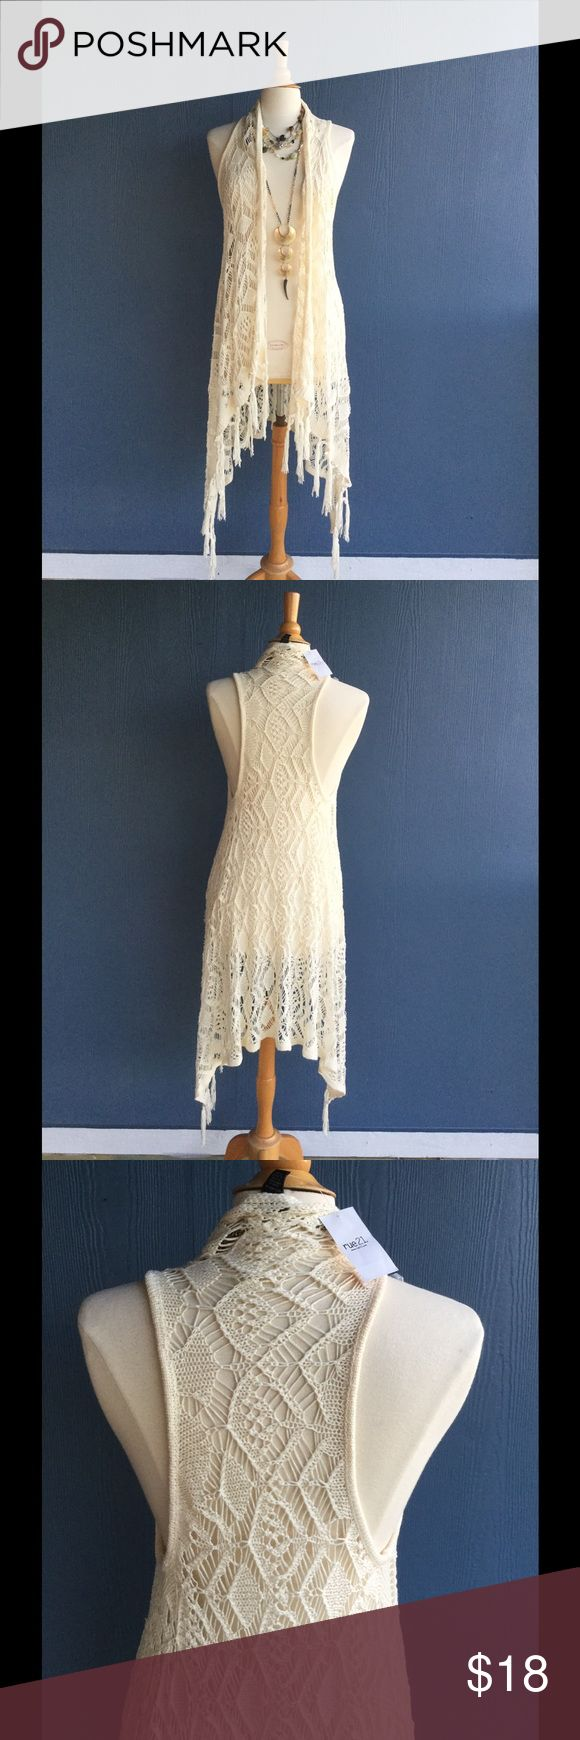 💕SOLD 💕Crochet duster Size Medium Jrs. Can fit up to Jrs large. Rue 21 Tops Tunics